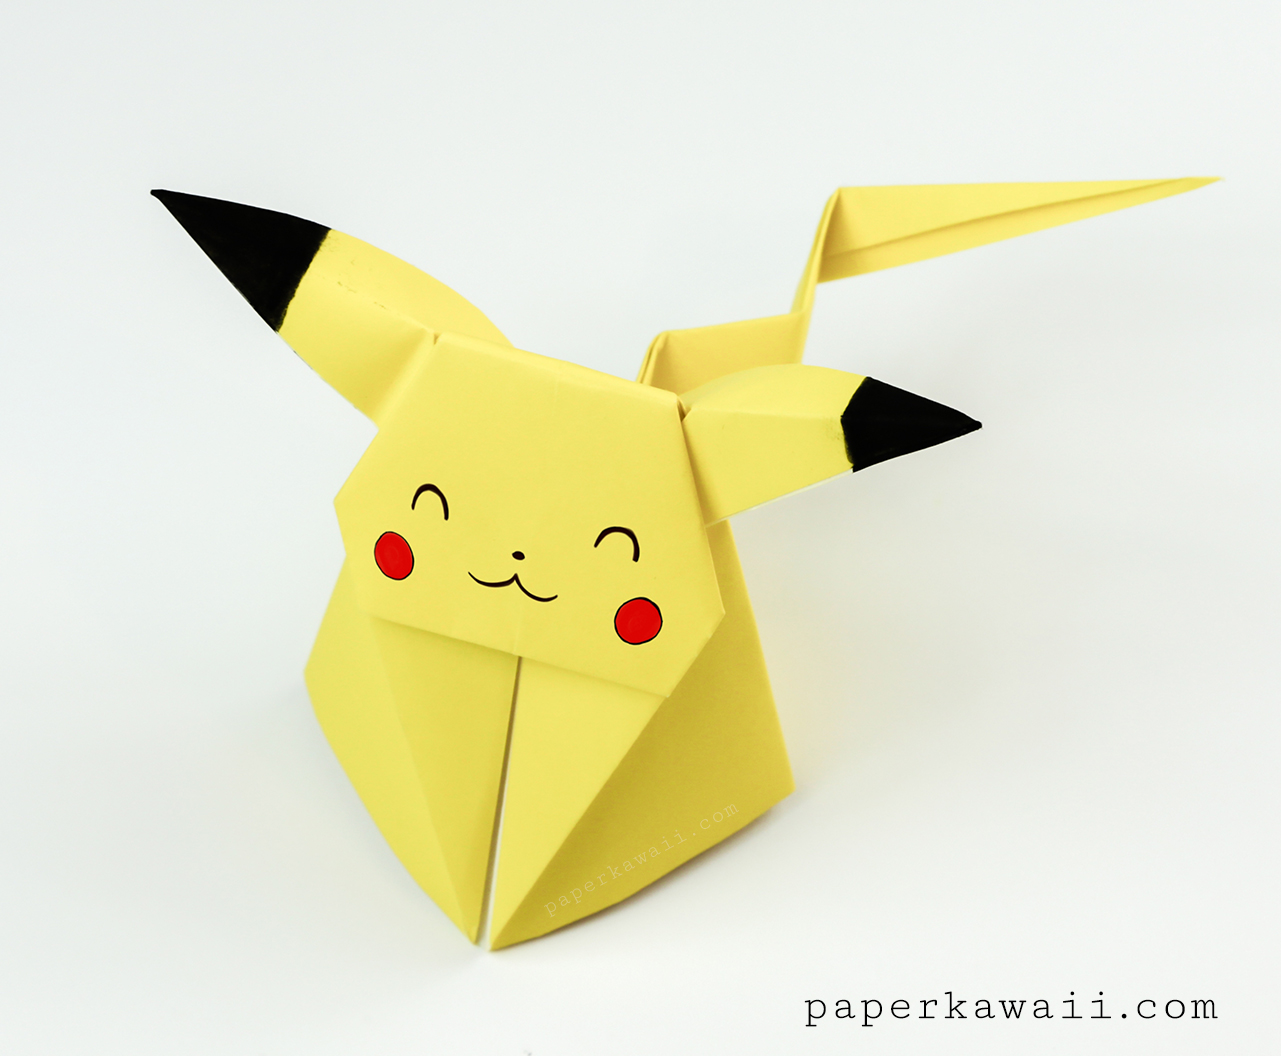 Origami Pikachu Tutorial - Cute Origami Pokemon! - Paper Kawaii